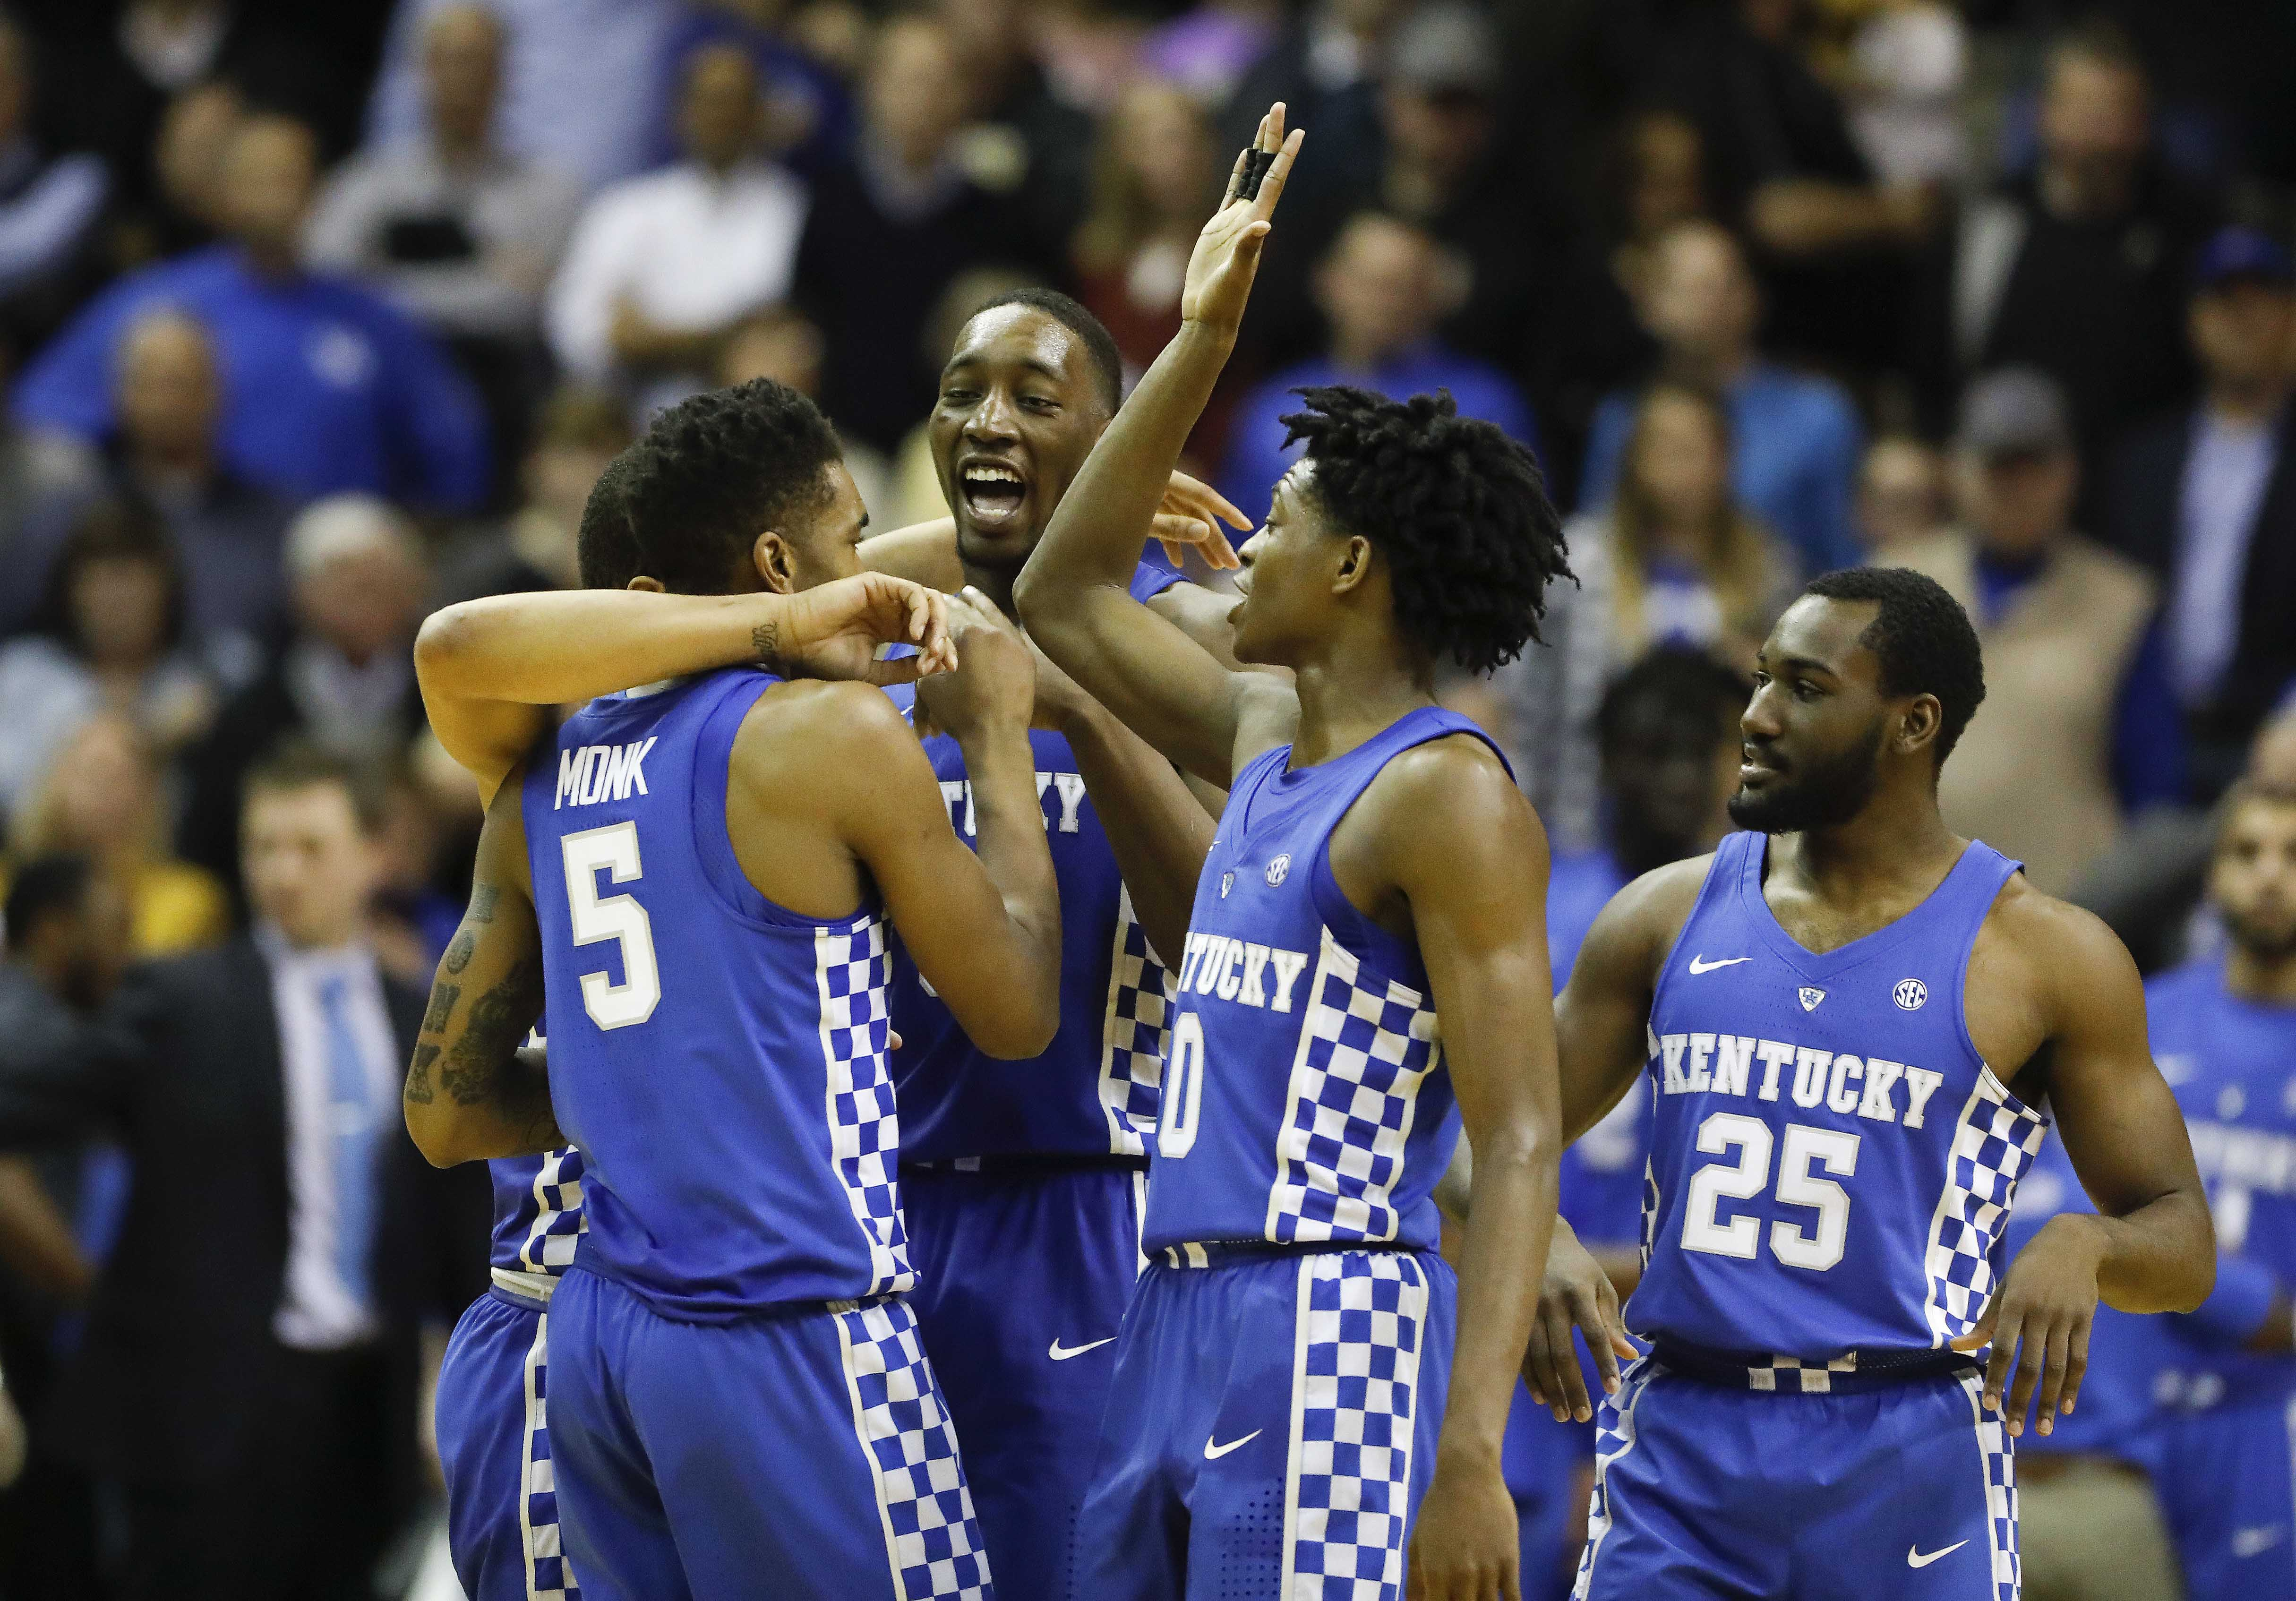 Kentucky Basketball Our First Look At The New Wildcats In: College Basketball Rankings 2017: Projected Week 11 Top 25